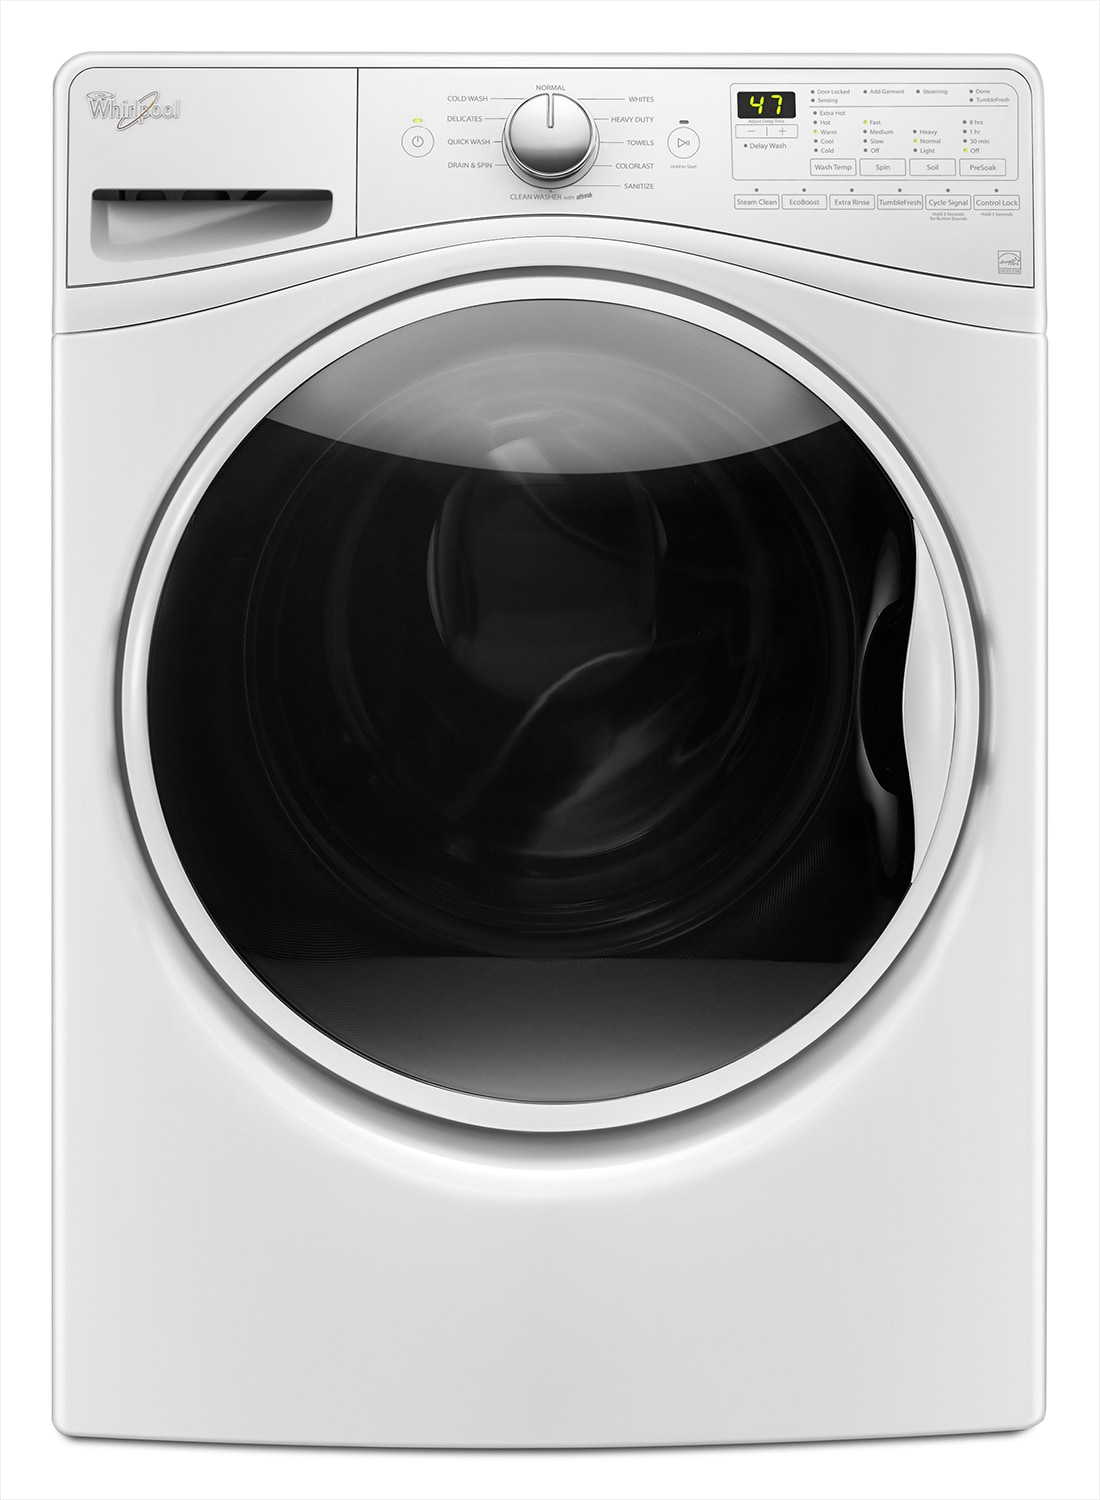 Washers and Dryers - Whirlpool 5.2 Cu. Ft. Front-Load Washer – WFW85HEFW